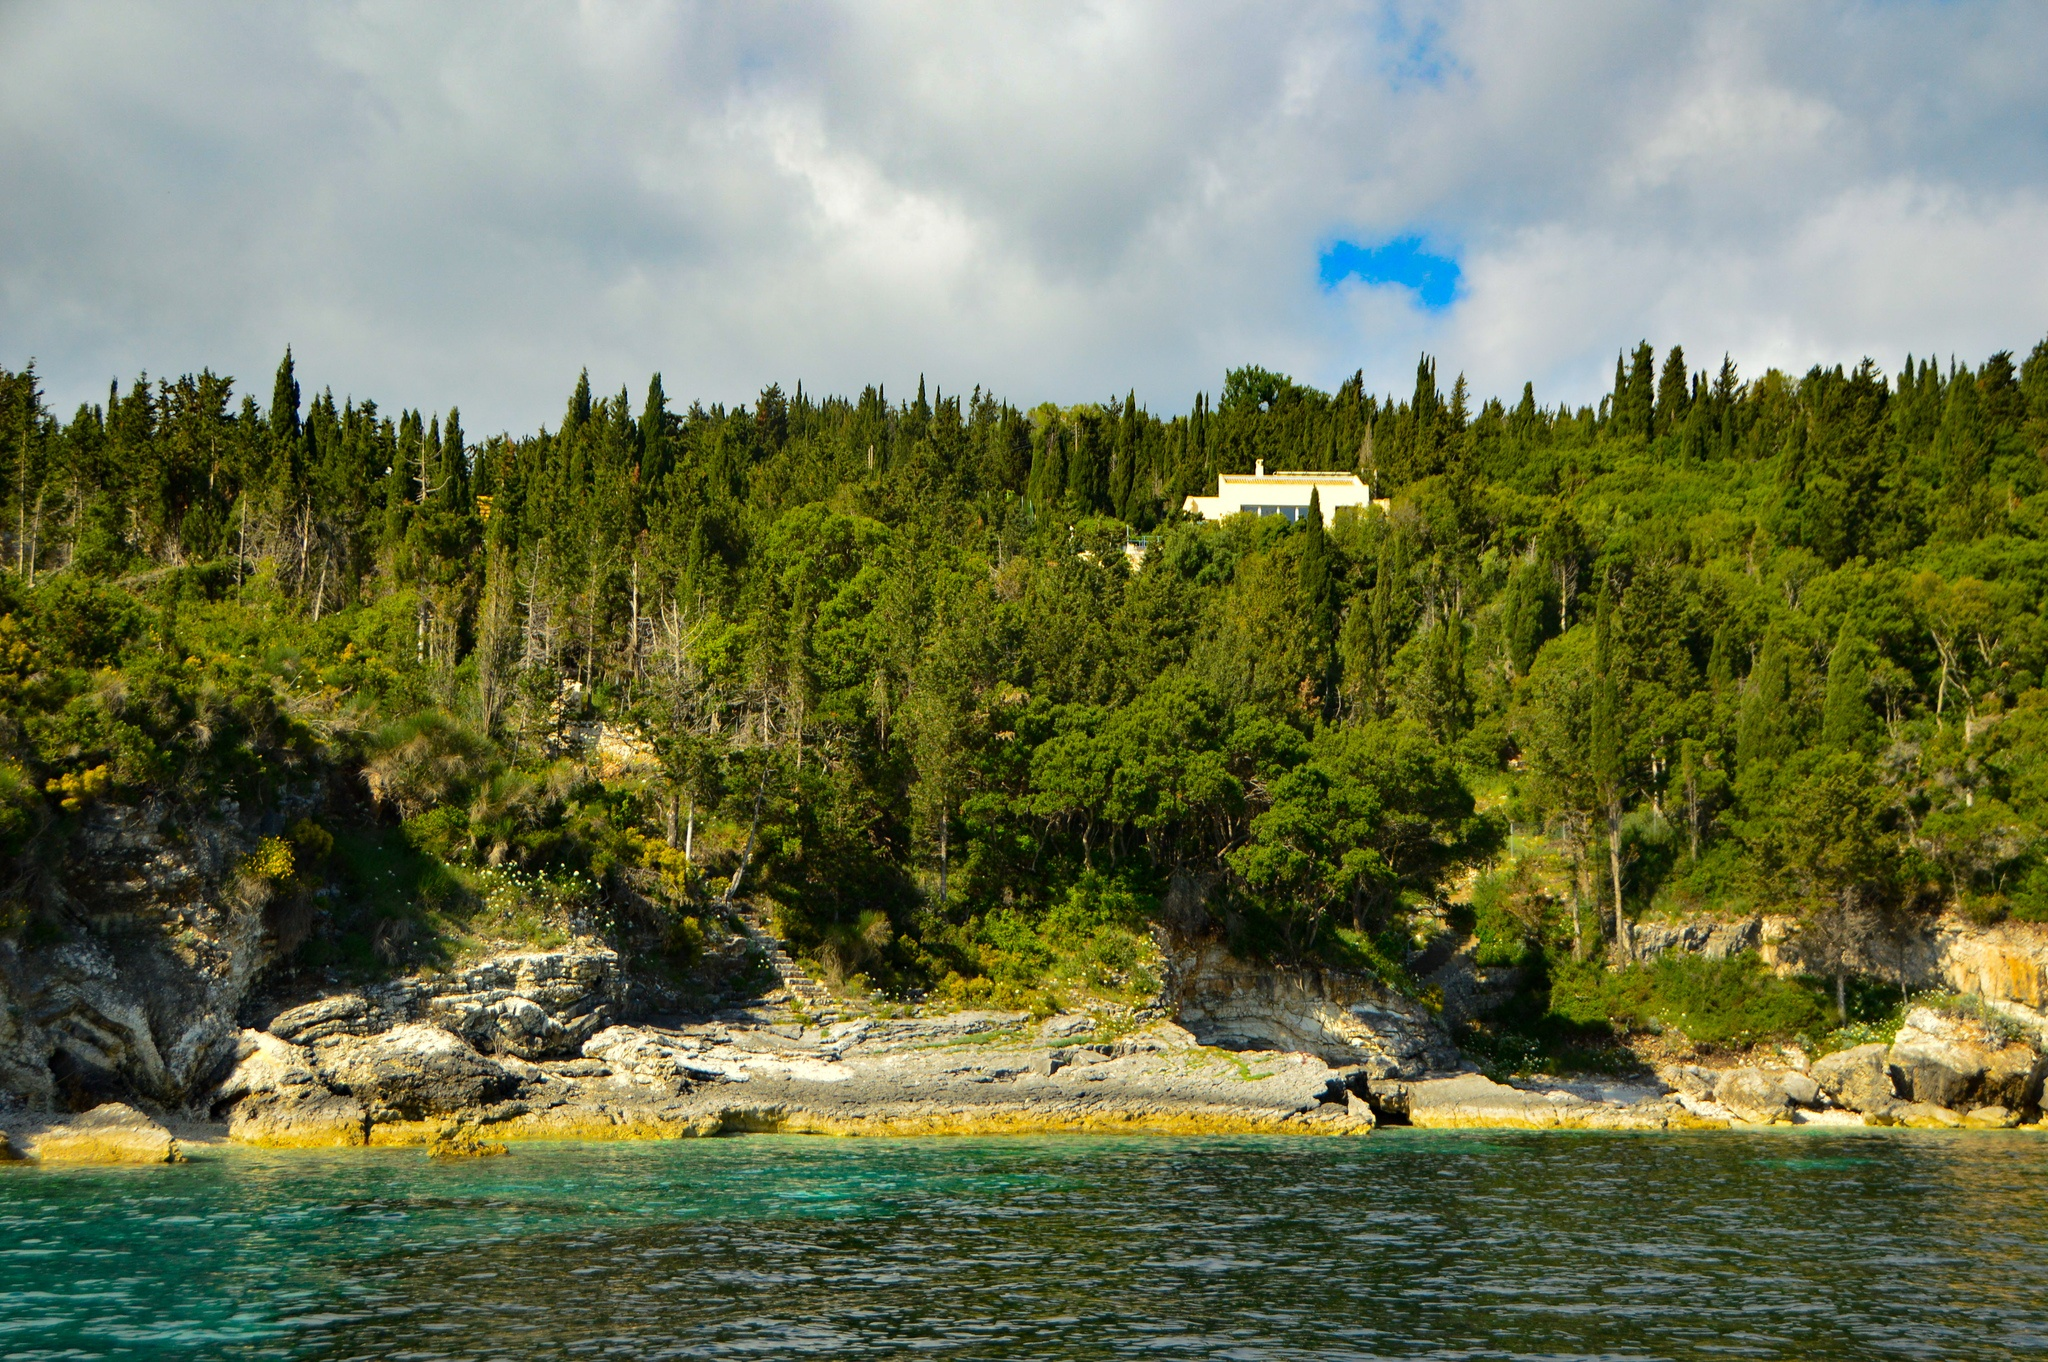 greece_paxos-villa-glaros-view-from-water-4